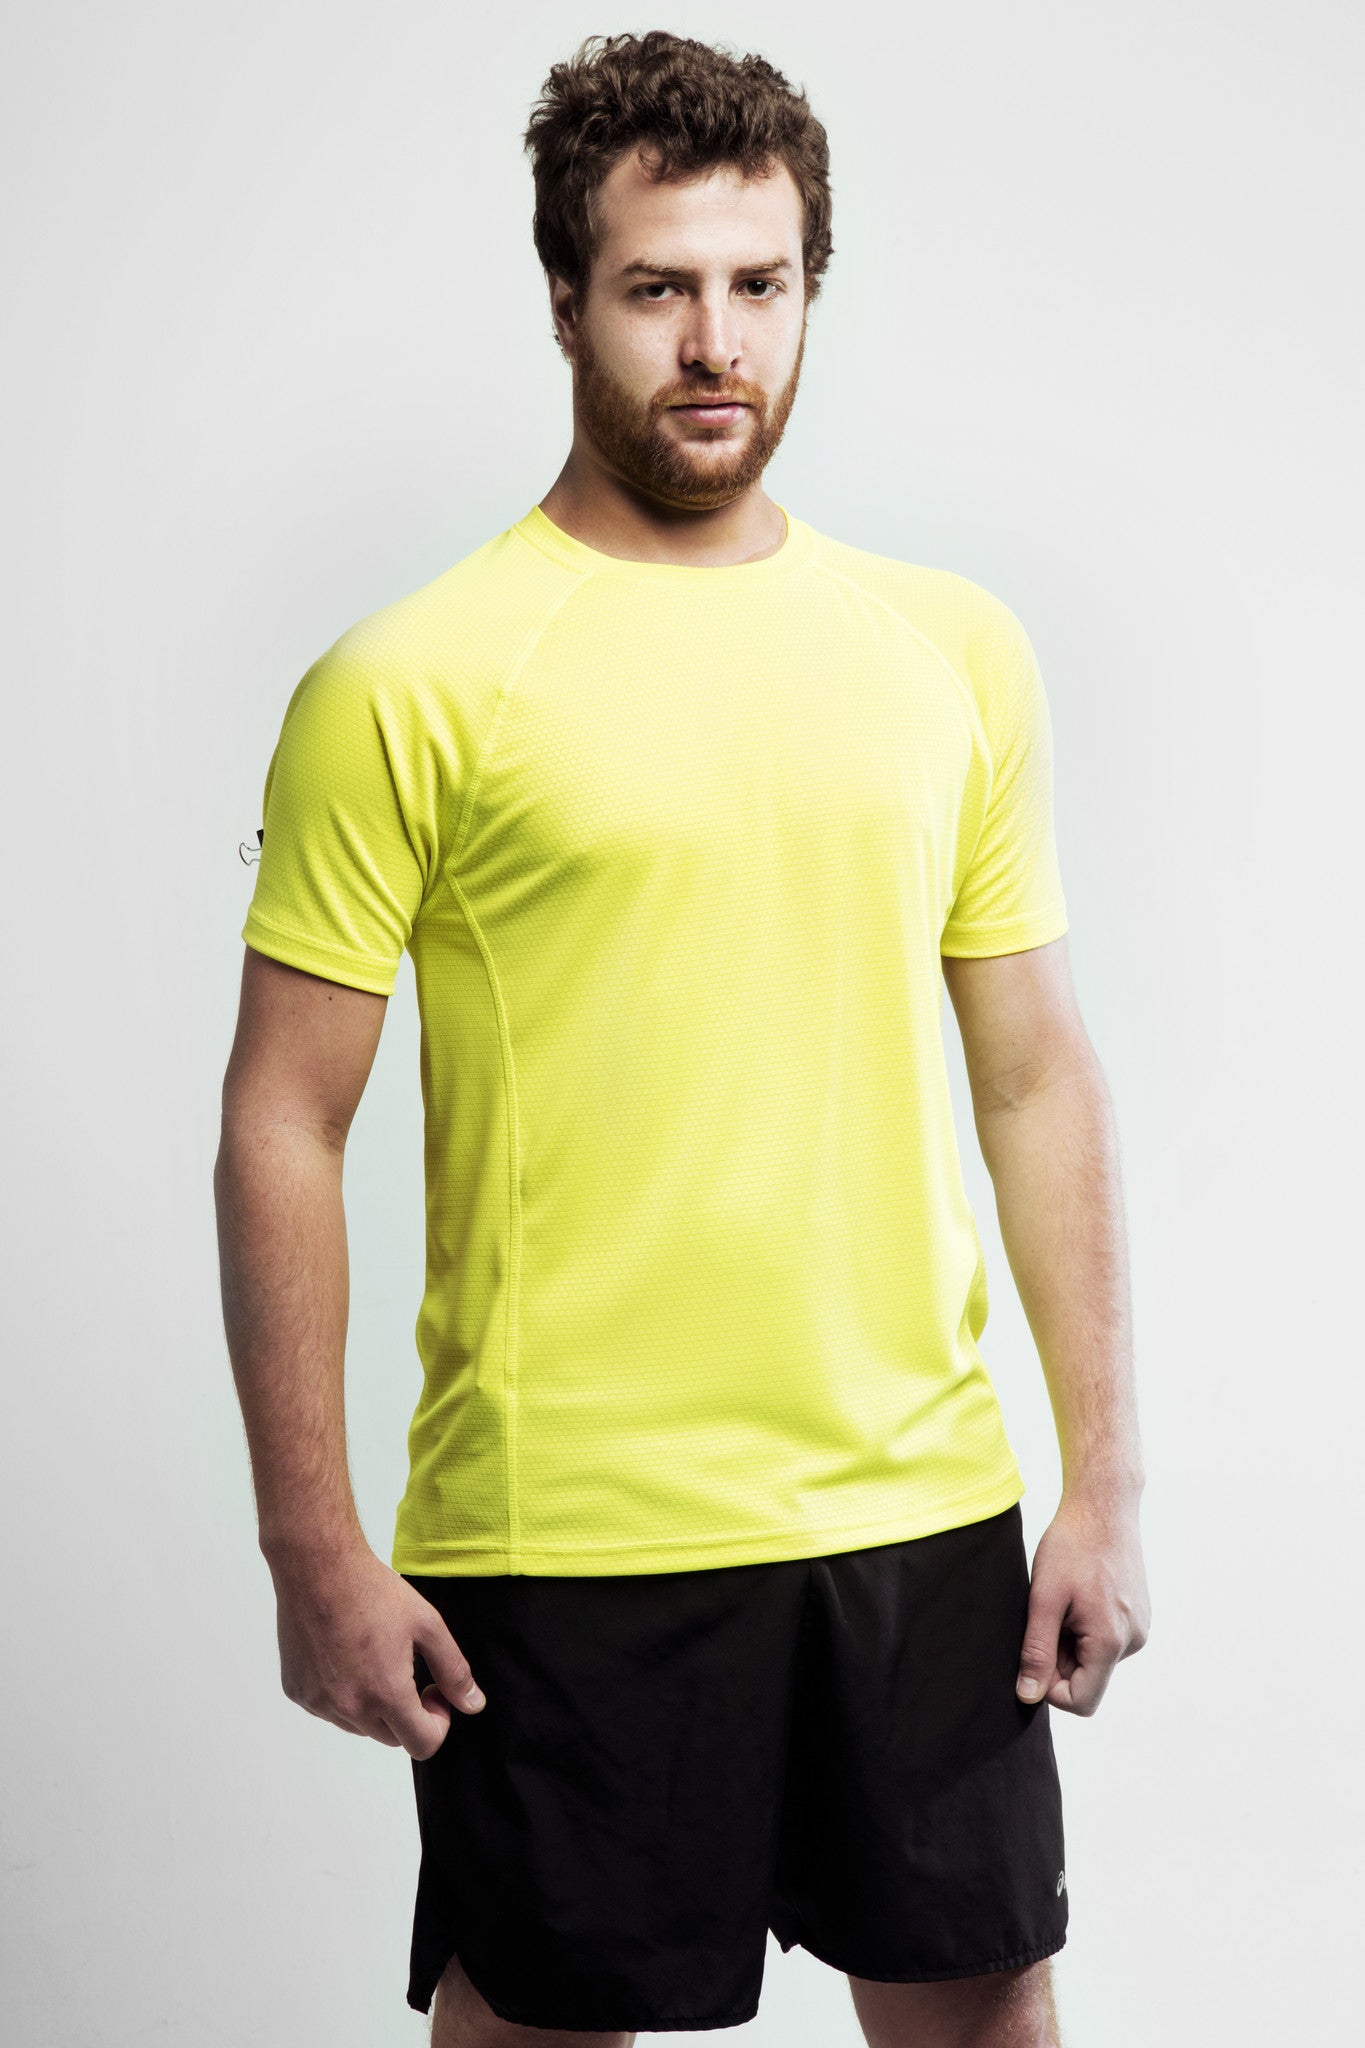 Men's Yellow Training Shirt